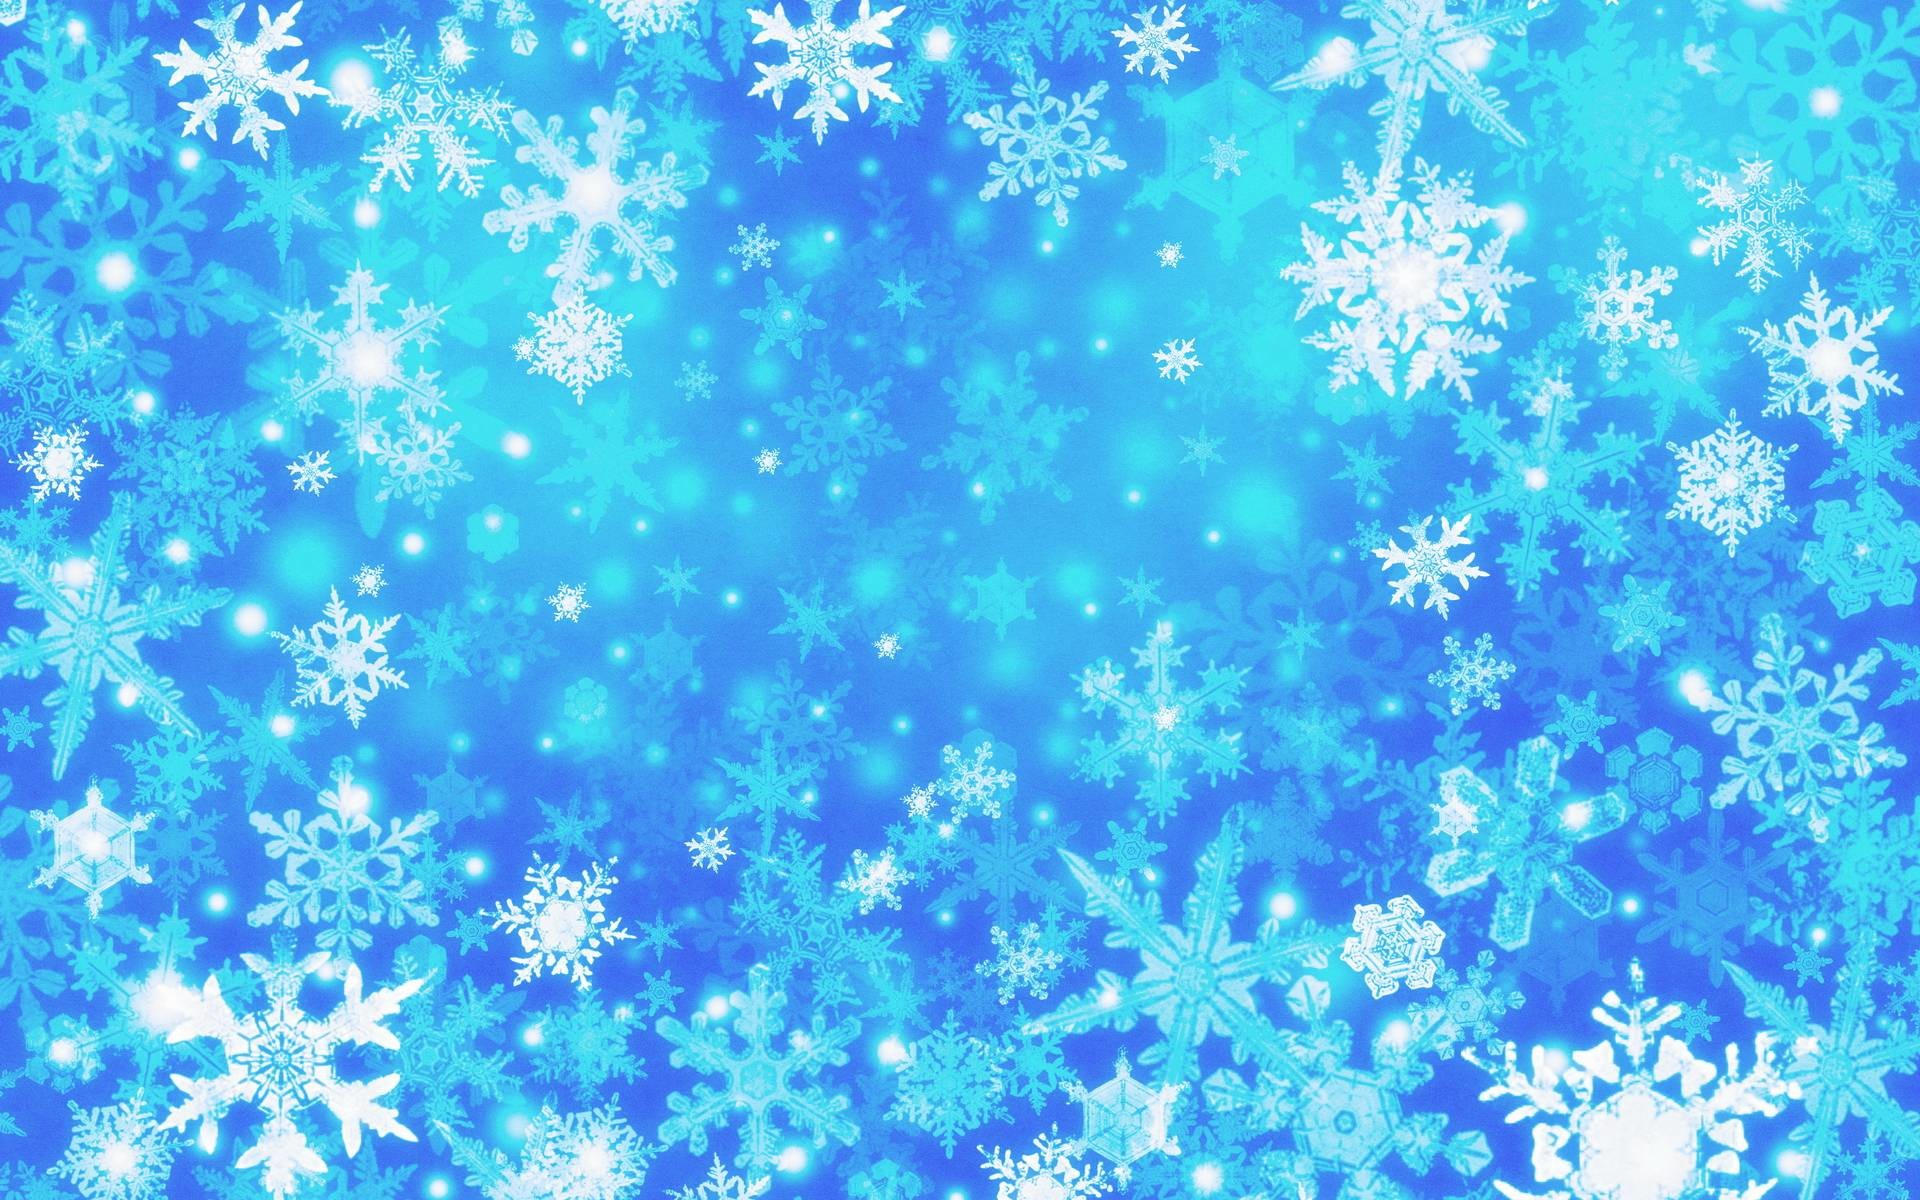 Free Download Snow Graphic Wallpaper in resolutions.